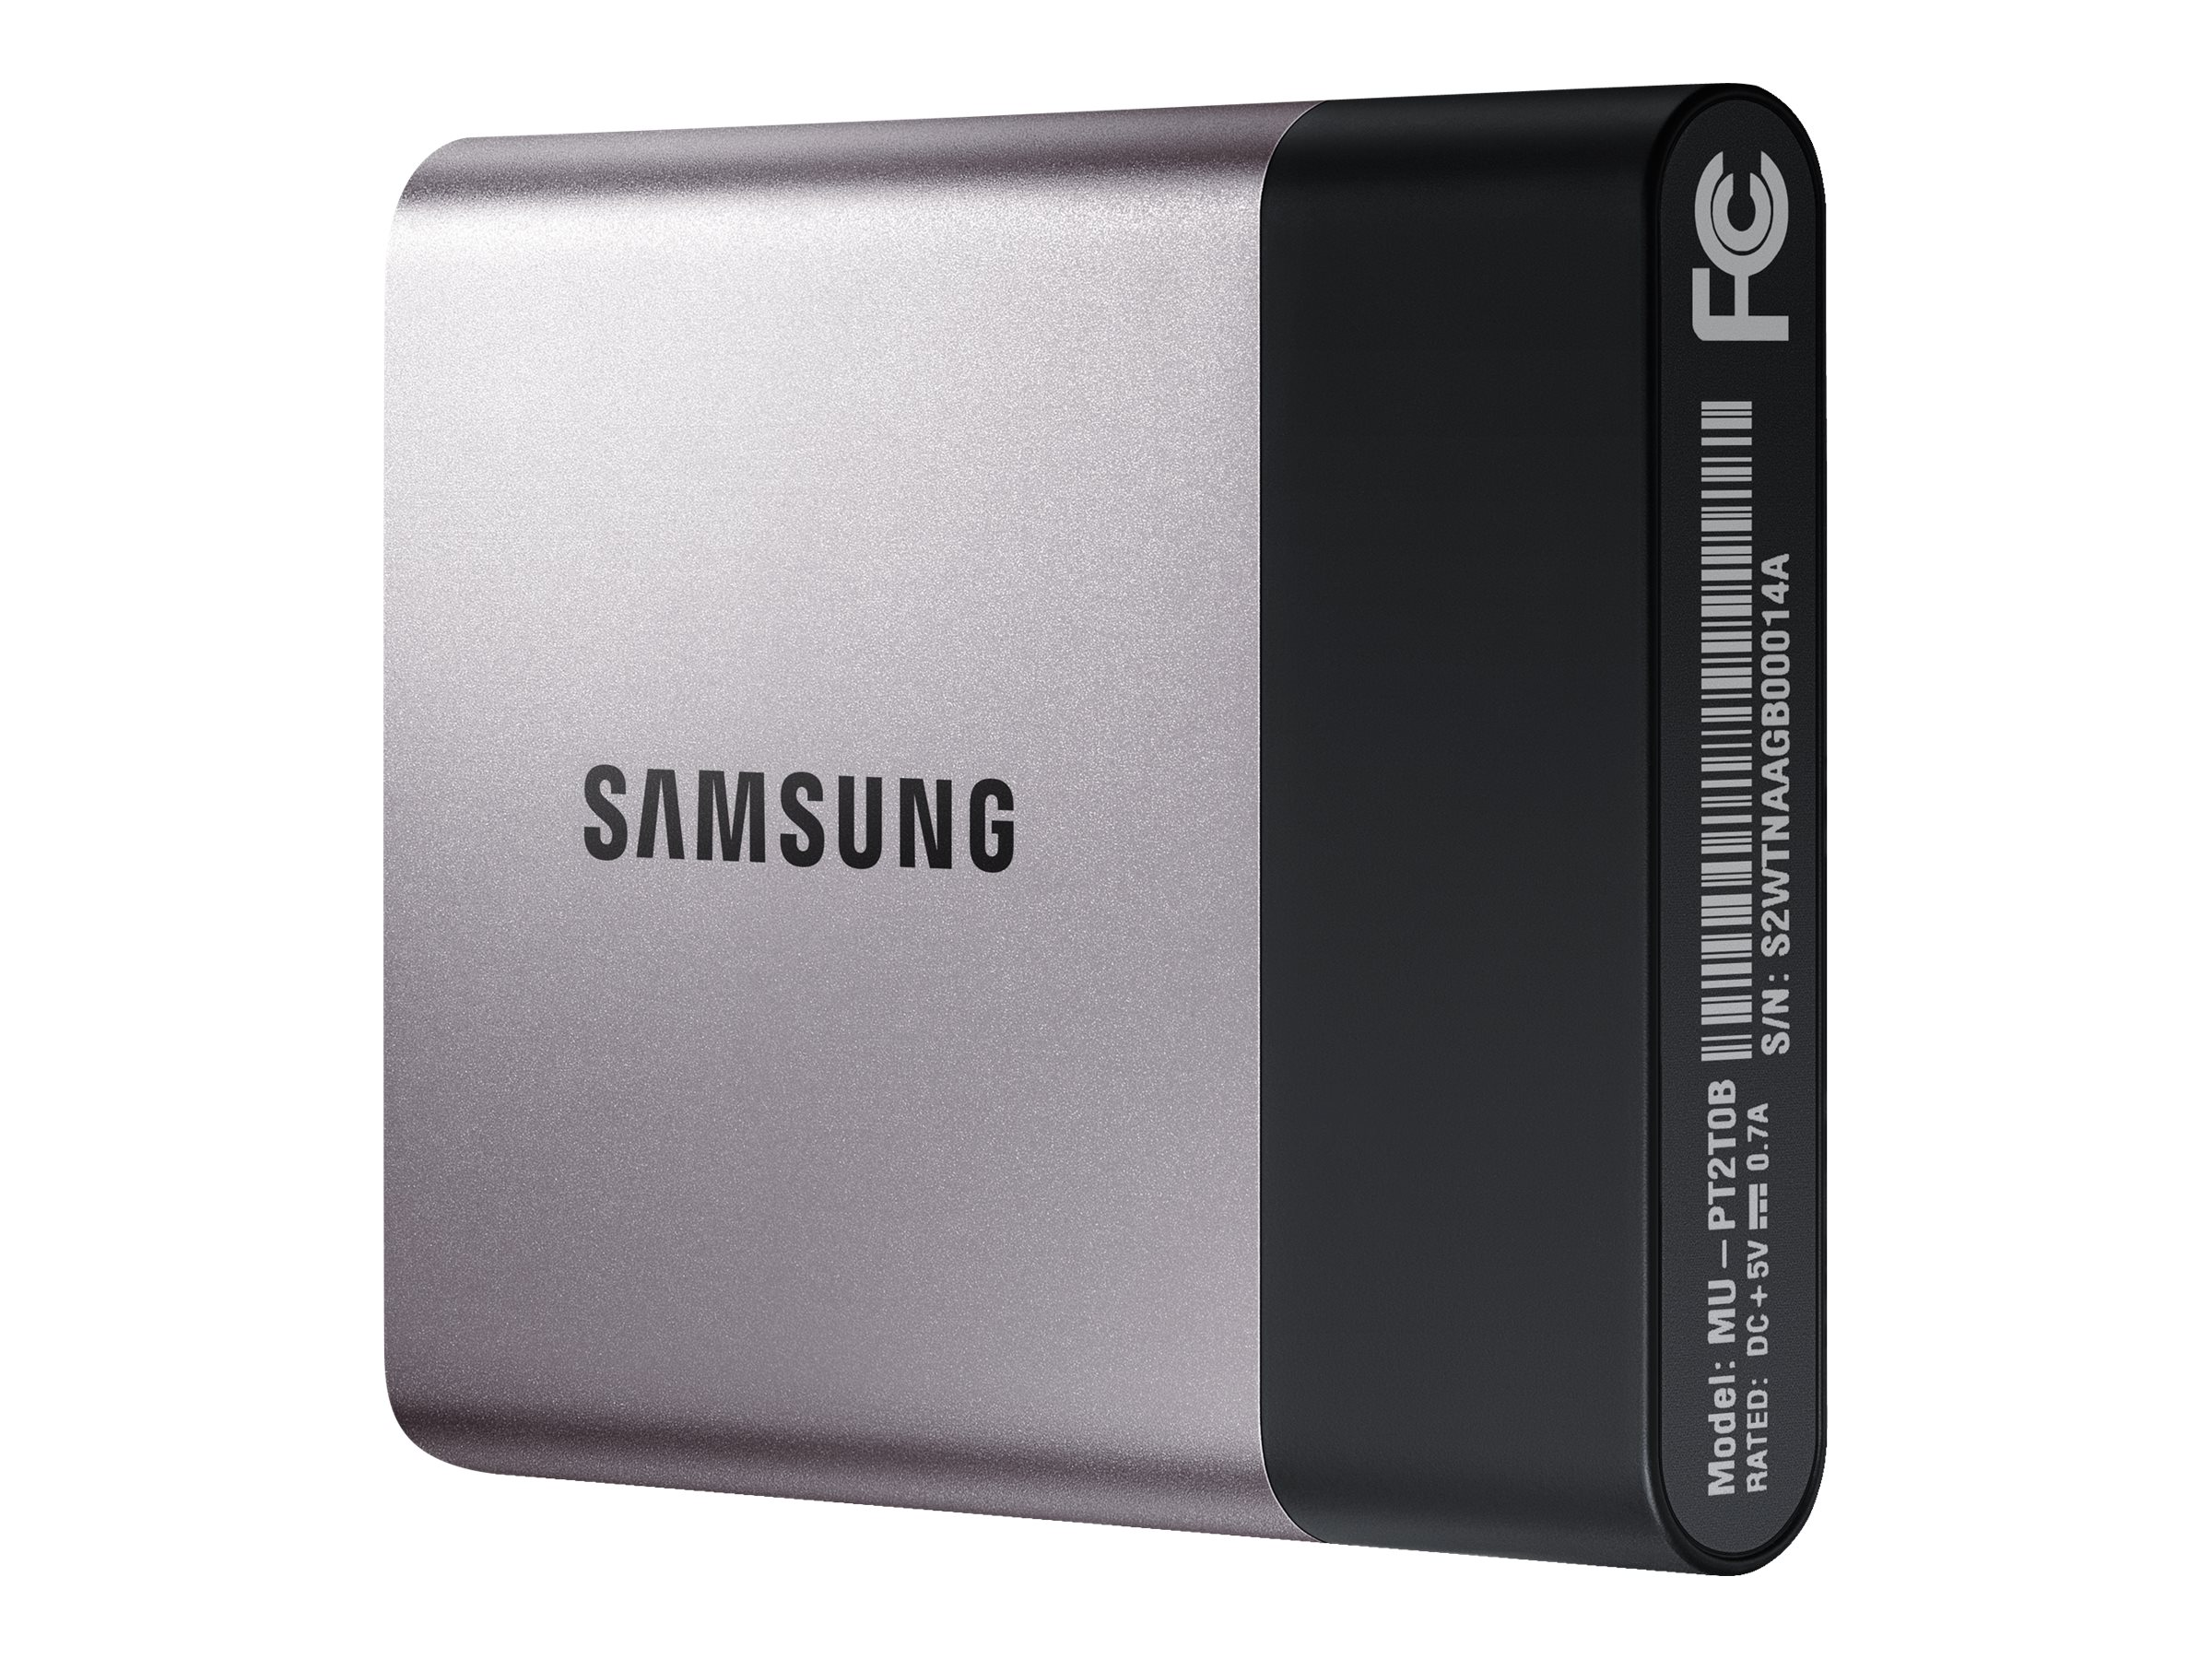 Samsung 500GB T3 USB 3.1 Portable Solid State Drive, MU-PT500B/AM, 31649961, Solid State Drives - External